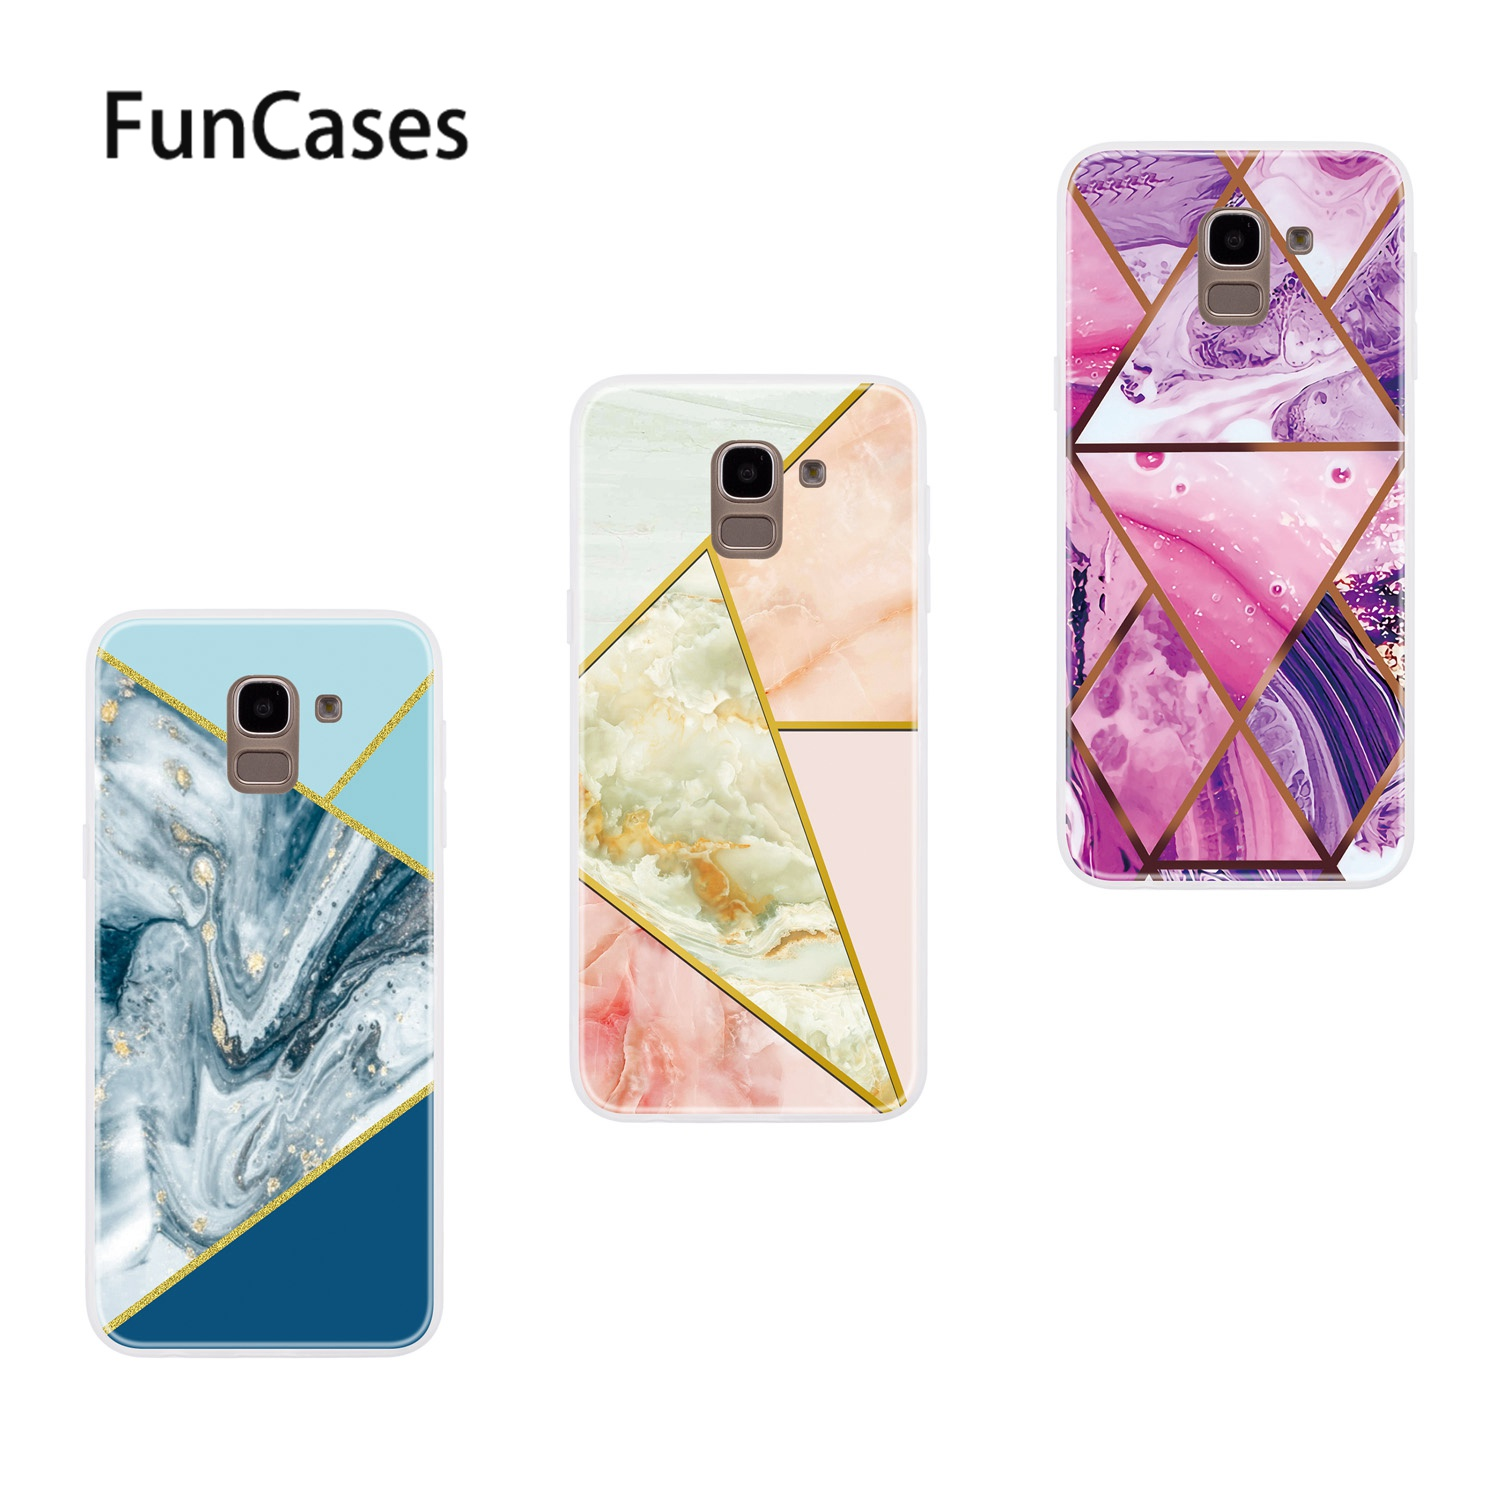 Cases For <font><b>Samsung</b></font> Note 10 Pro Soft TPU Cases Coques sFor Galaxy J6 2018 J4 Plus <font><b>Samsung</b></font> J7 <font><b>2017</b></font> <font><b>J3</b></font> J5 M30S phone case Note 10 image